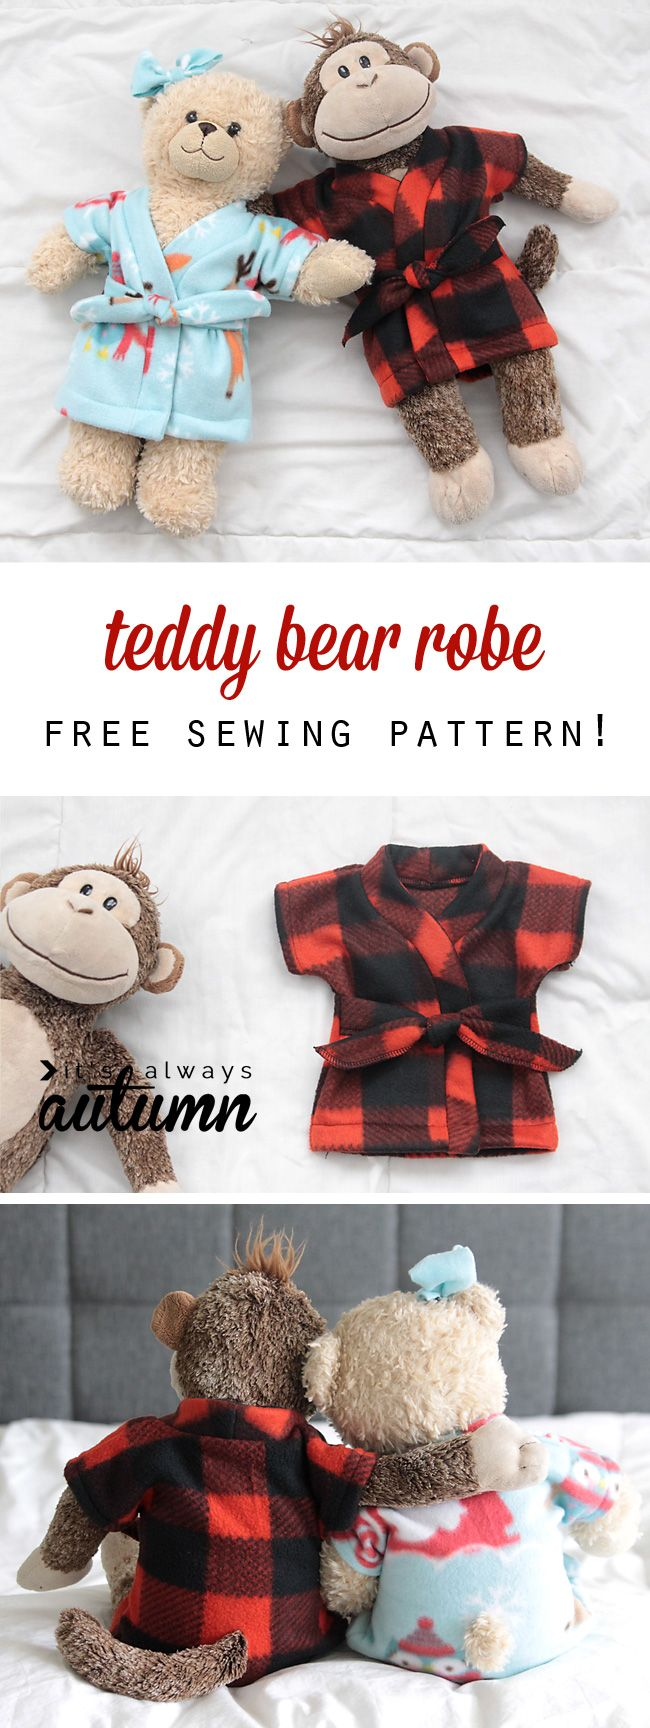 Free stuffed animal or teddy bear robe pattern and easy to follow sewing tutorial. How to make a DIY robe for a toy.